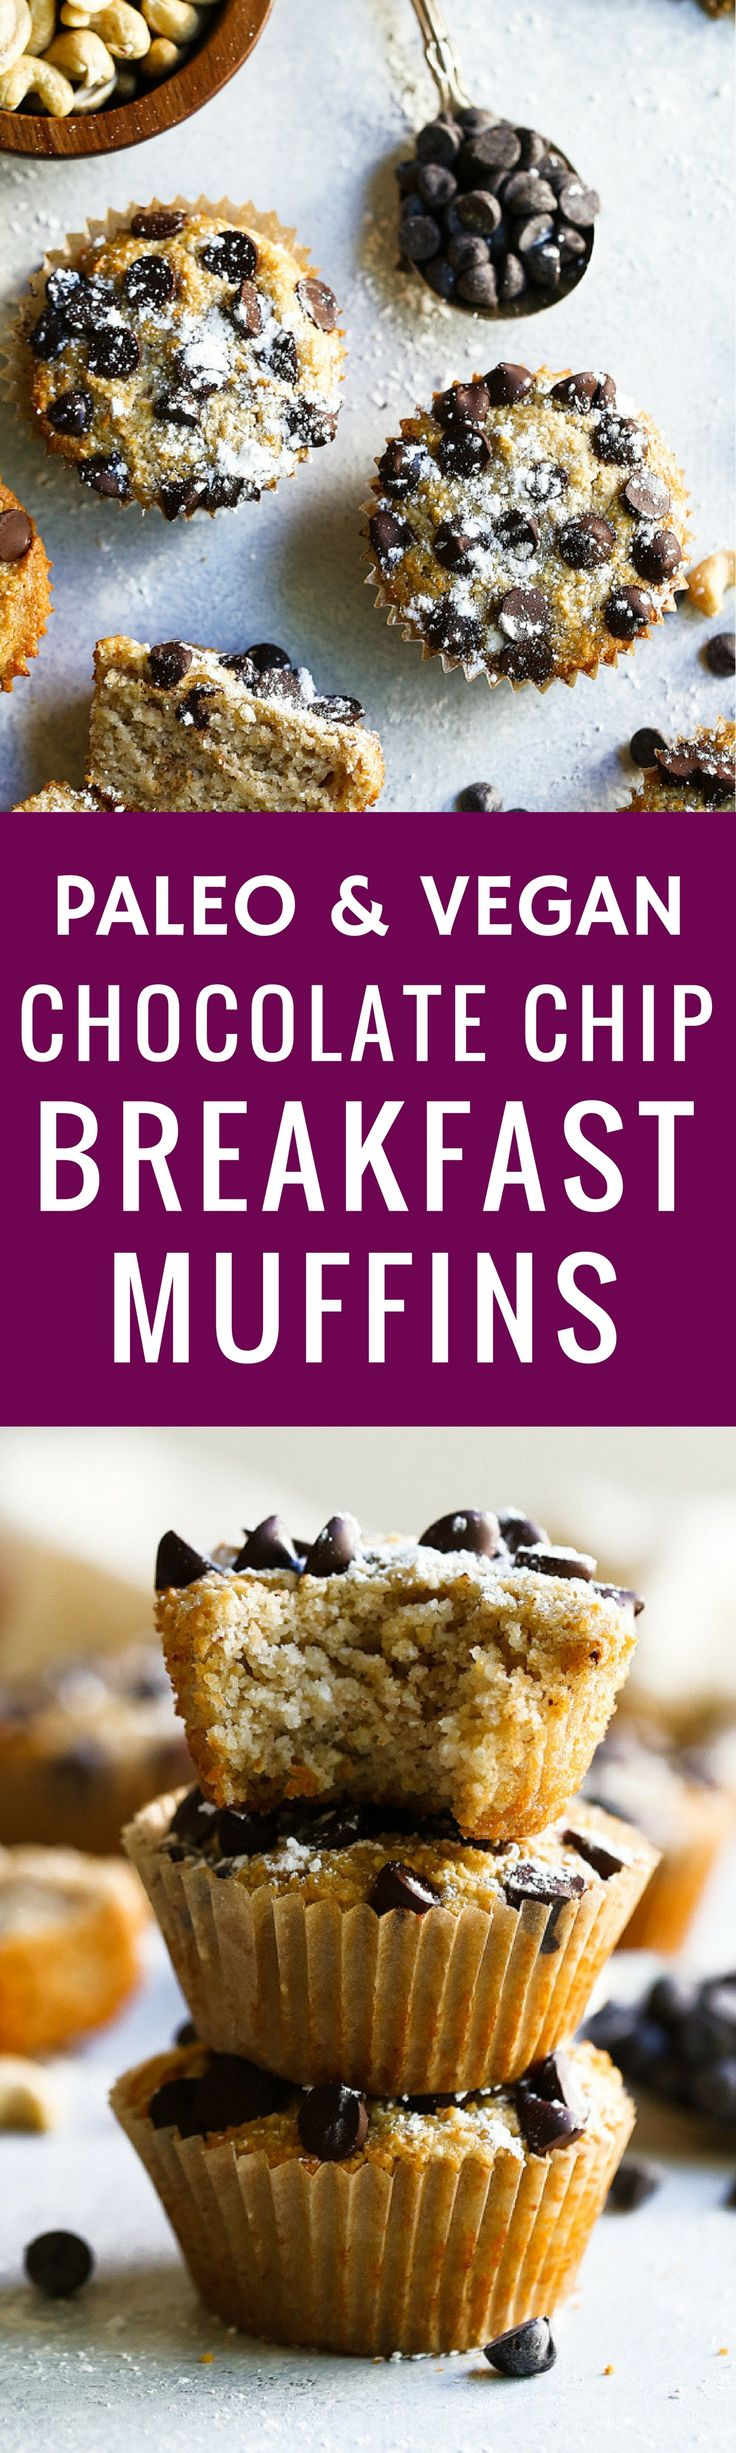 5 Minute Paleo Vegan Chocolate Chip Breakfast Muffins! Best paleo muffins! Easy gluten free breakfast. Best healthy breakfast recipes. Easy gluten free muffins. Best chocolate recipes. Easy vegan muffins recipe!